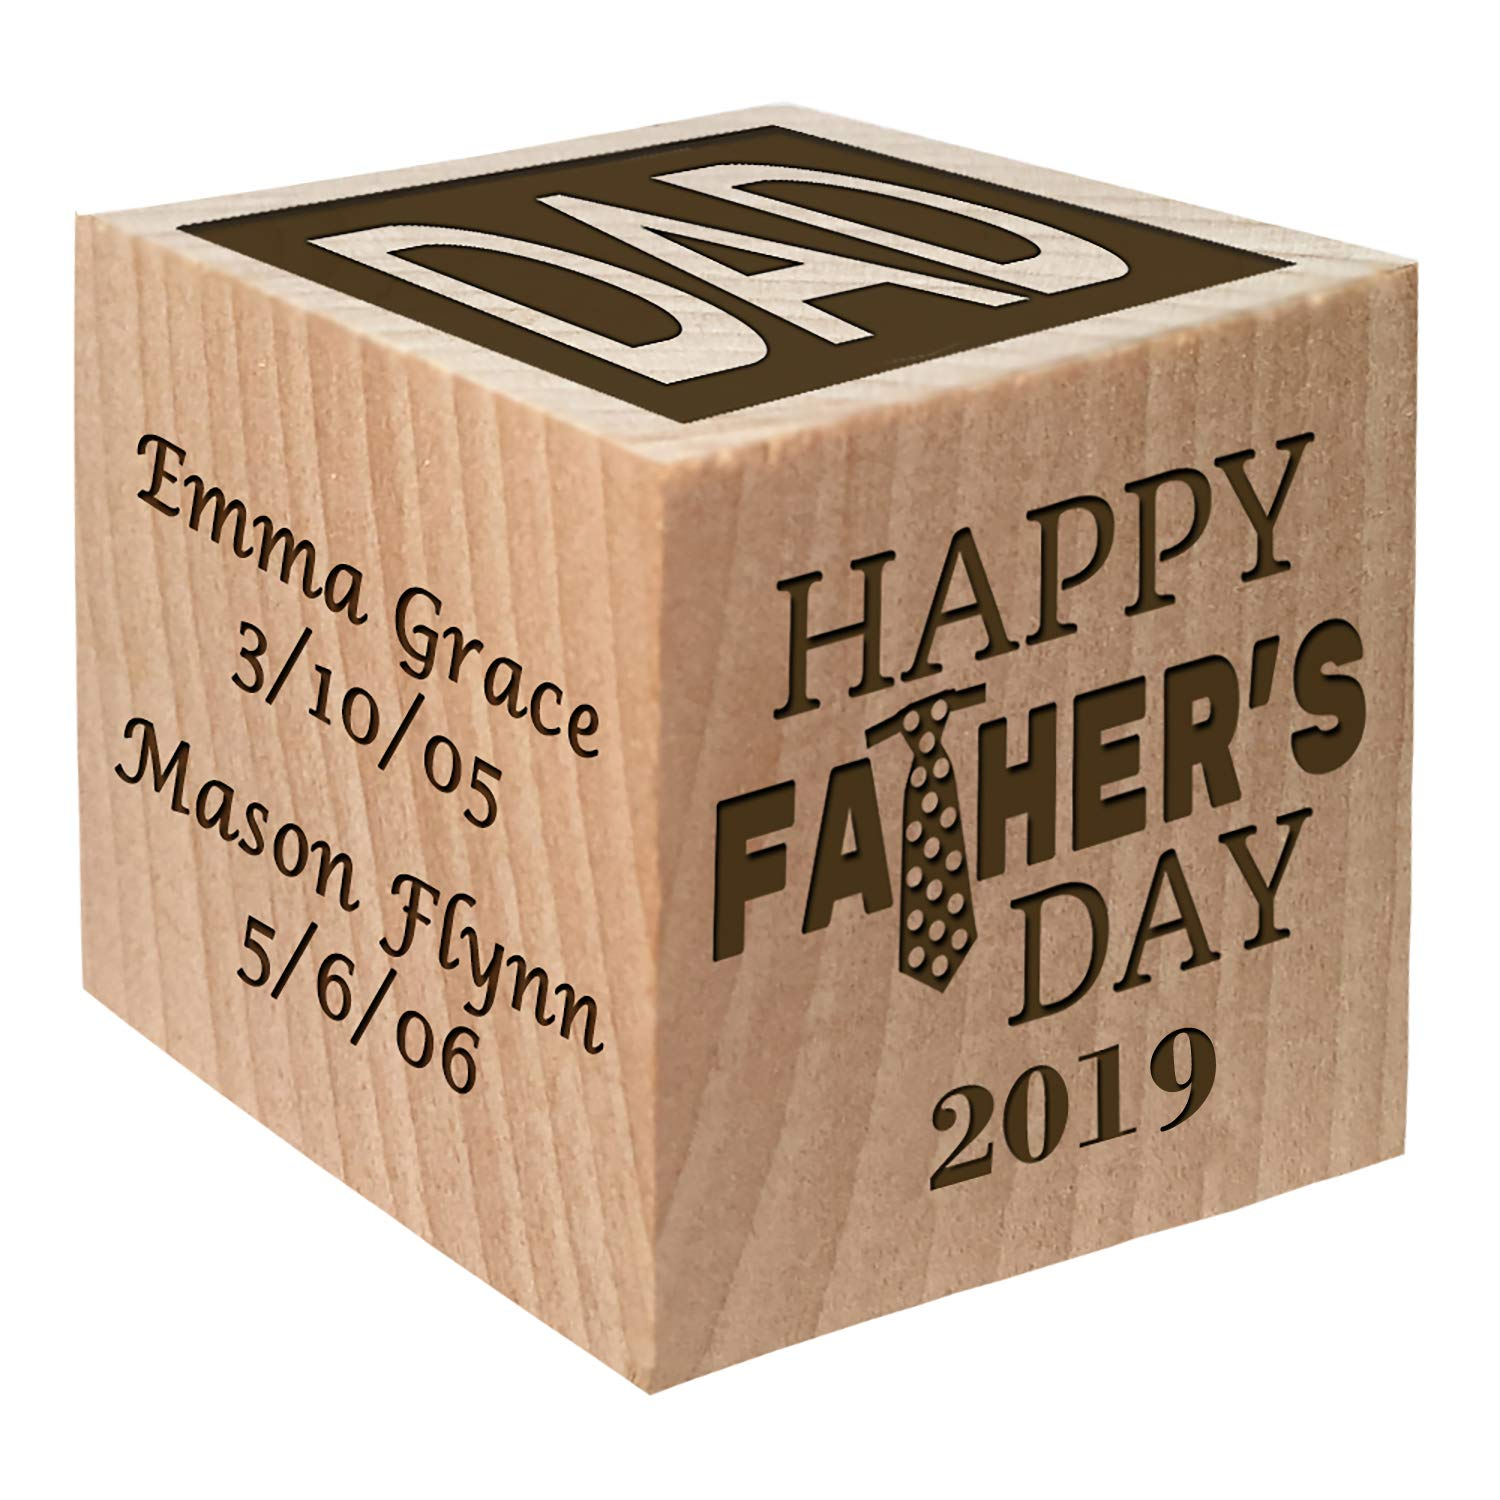 Personalized Block First Fathers Day Gift Custom Engraved Wooden Baby Block for Boy and Girl and New Dad 2019 Fathers Day Gift